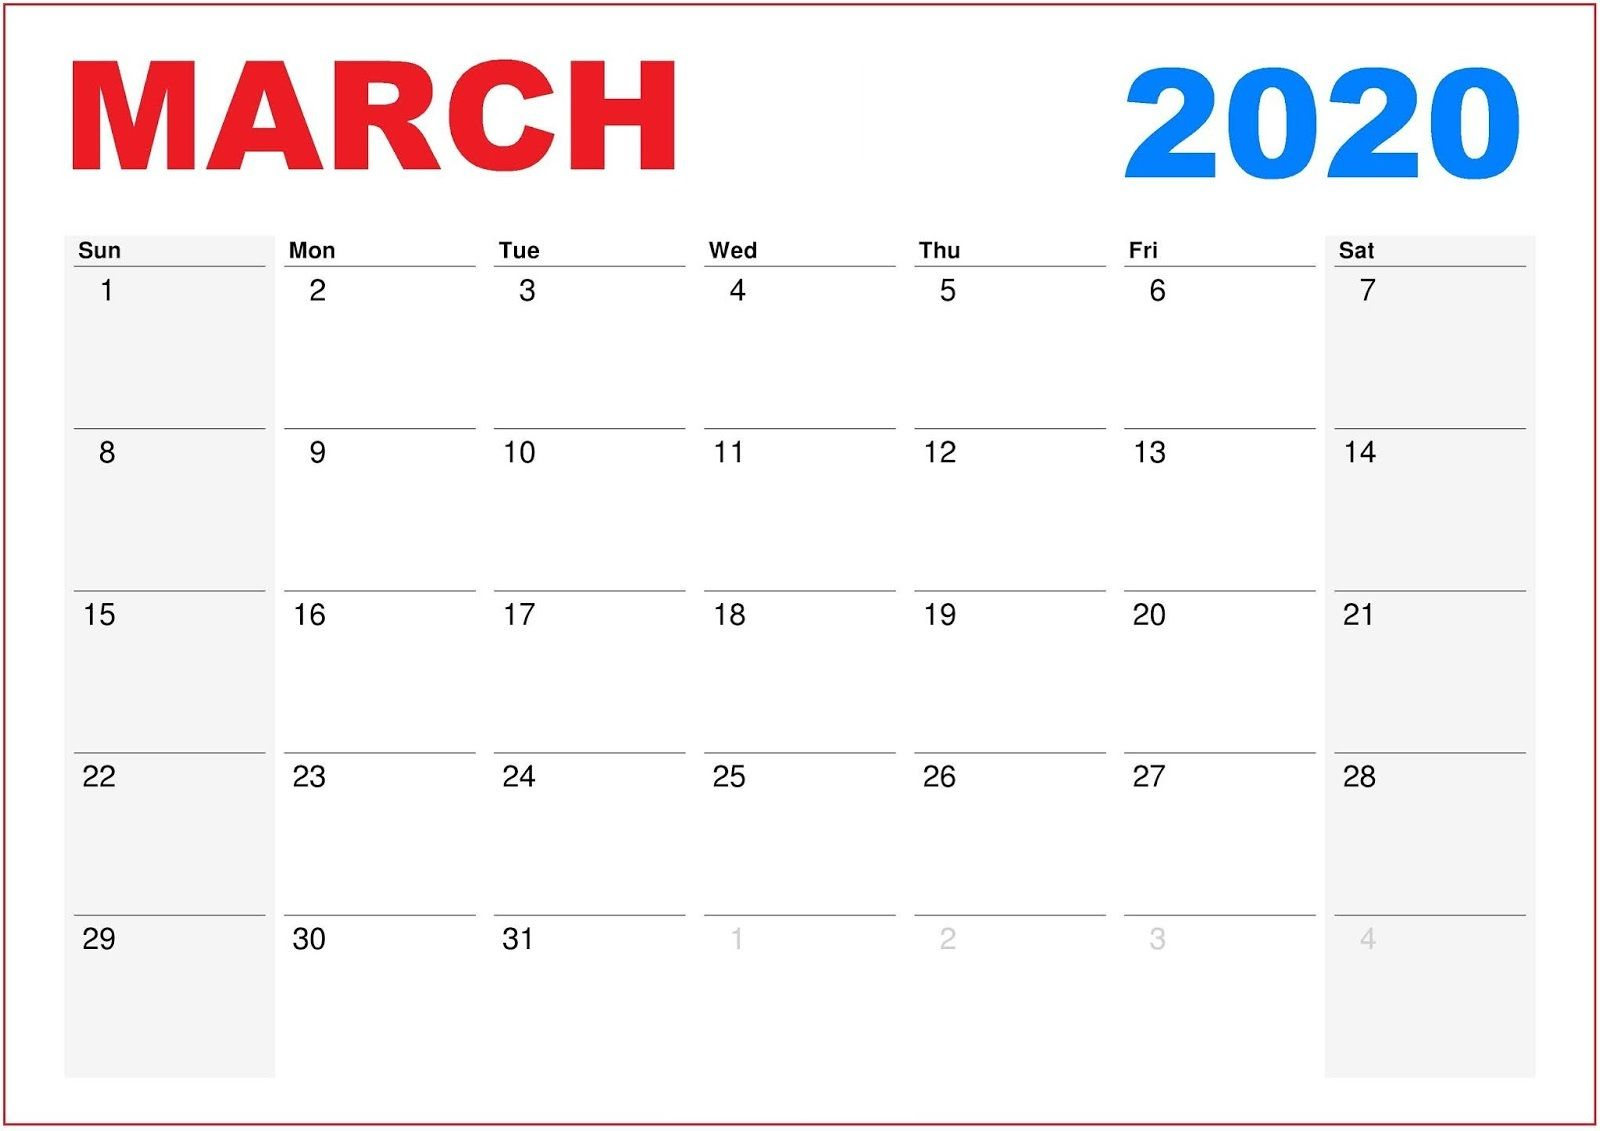 Cute March 2020 Calendar Wallpaper For Desktop And Iphone In 2020